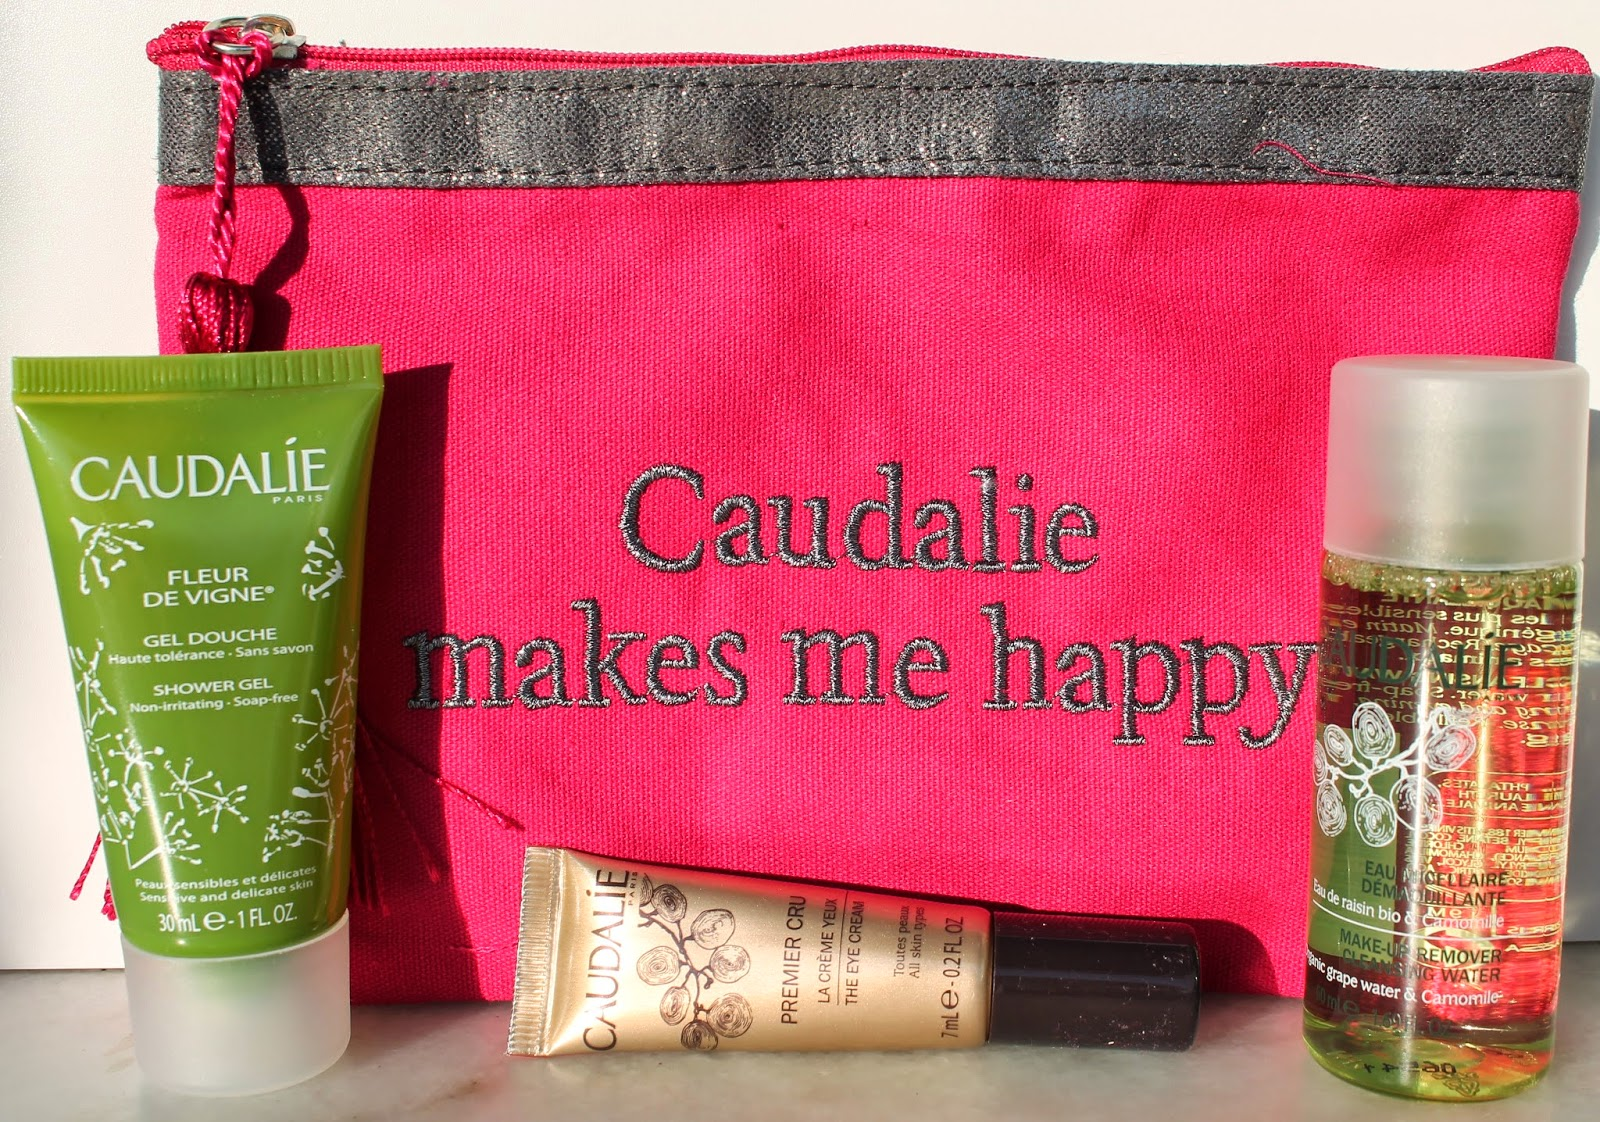 Caudalie Makes Me Happy